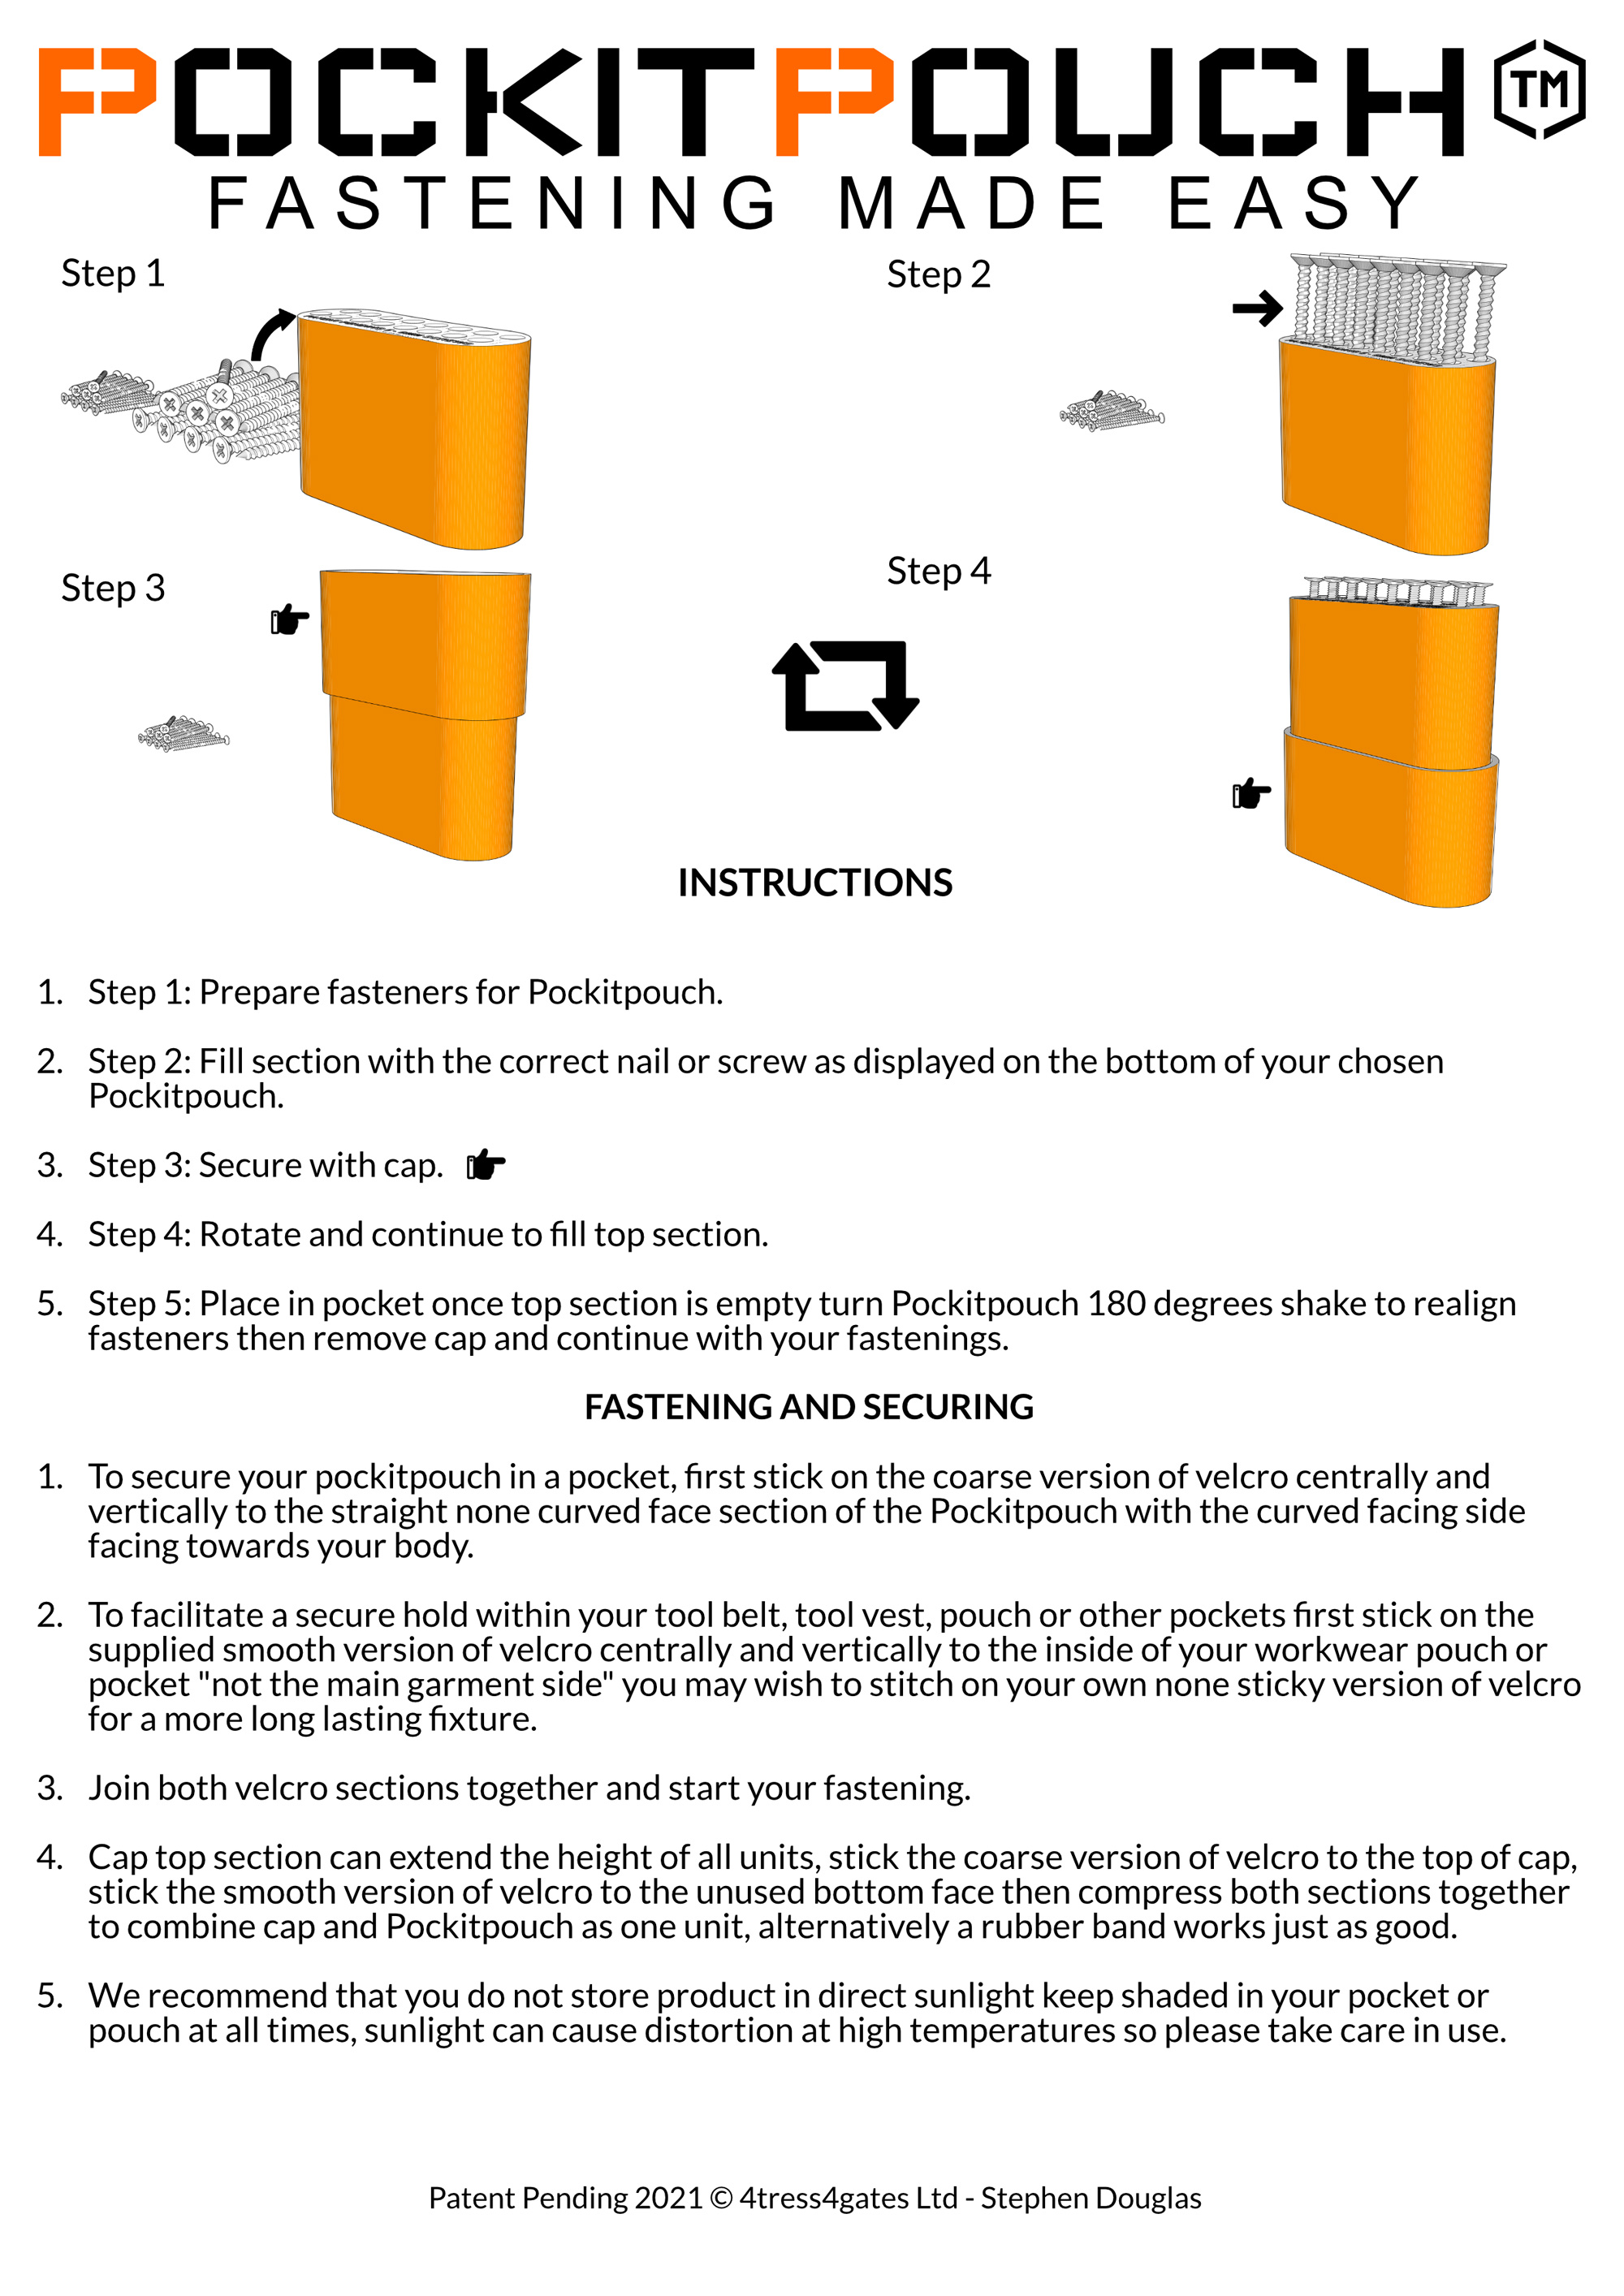 Pockitpouch instructions and fastening options for nails and screws